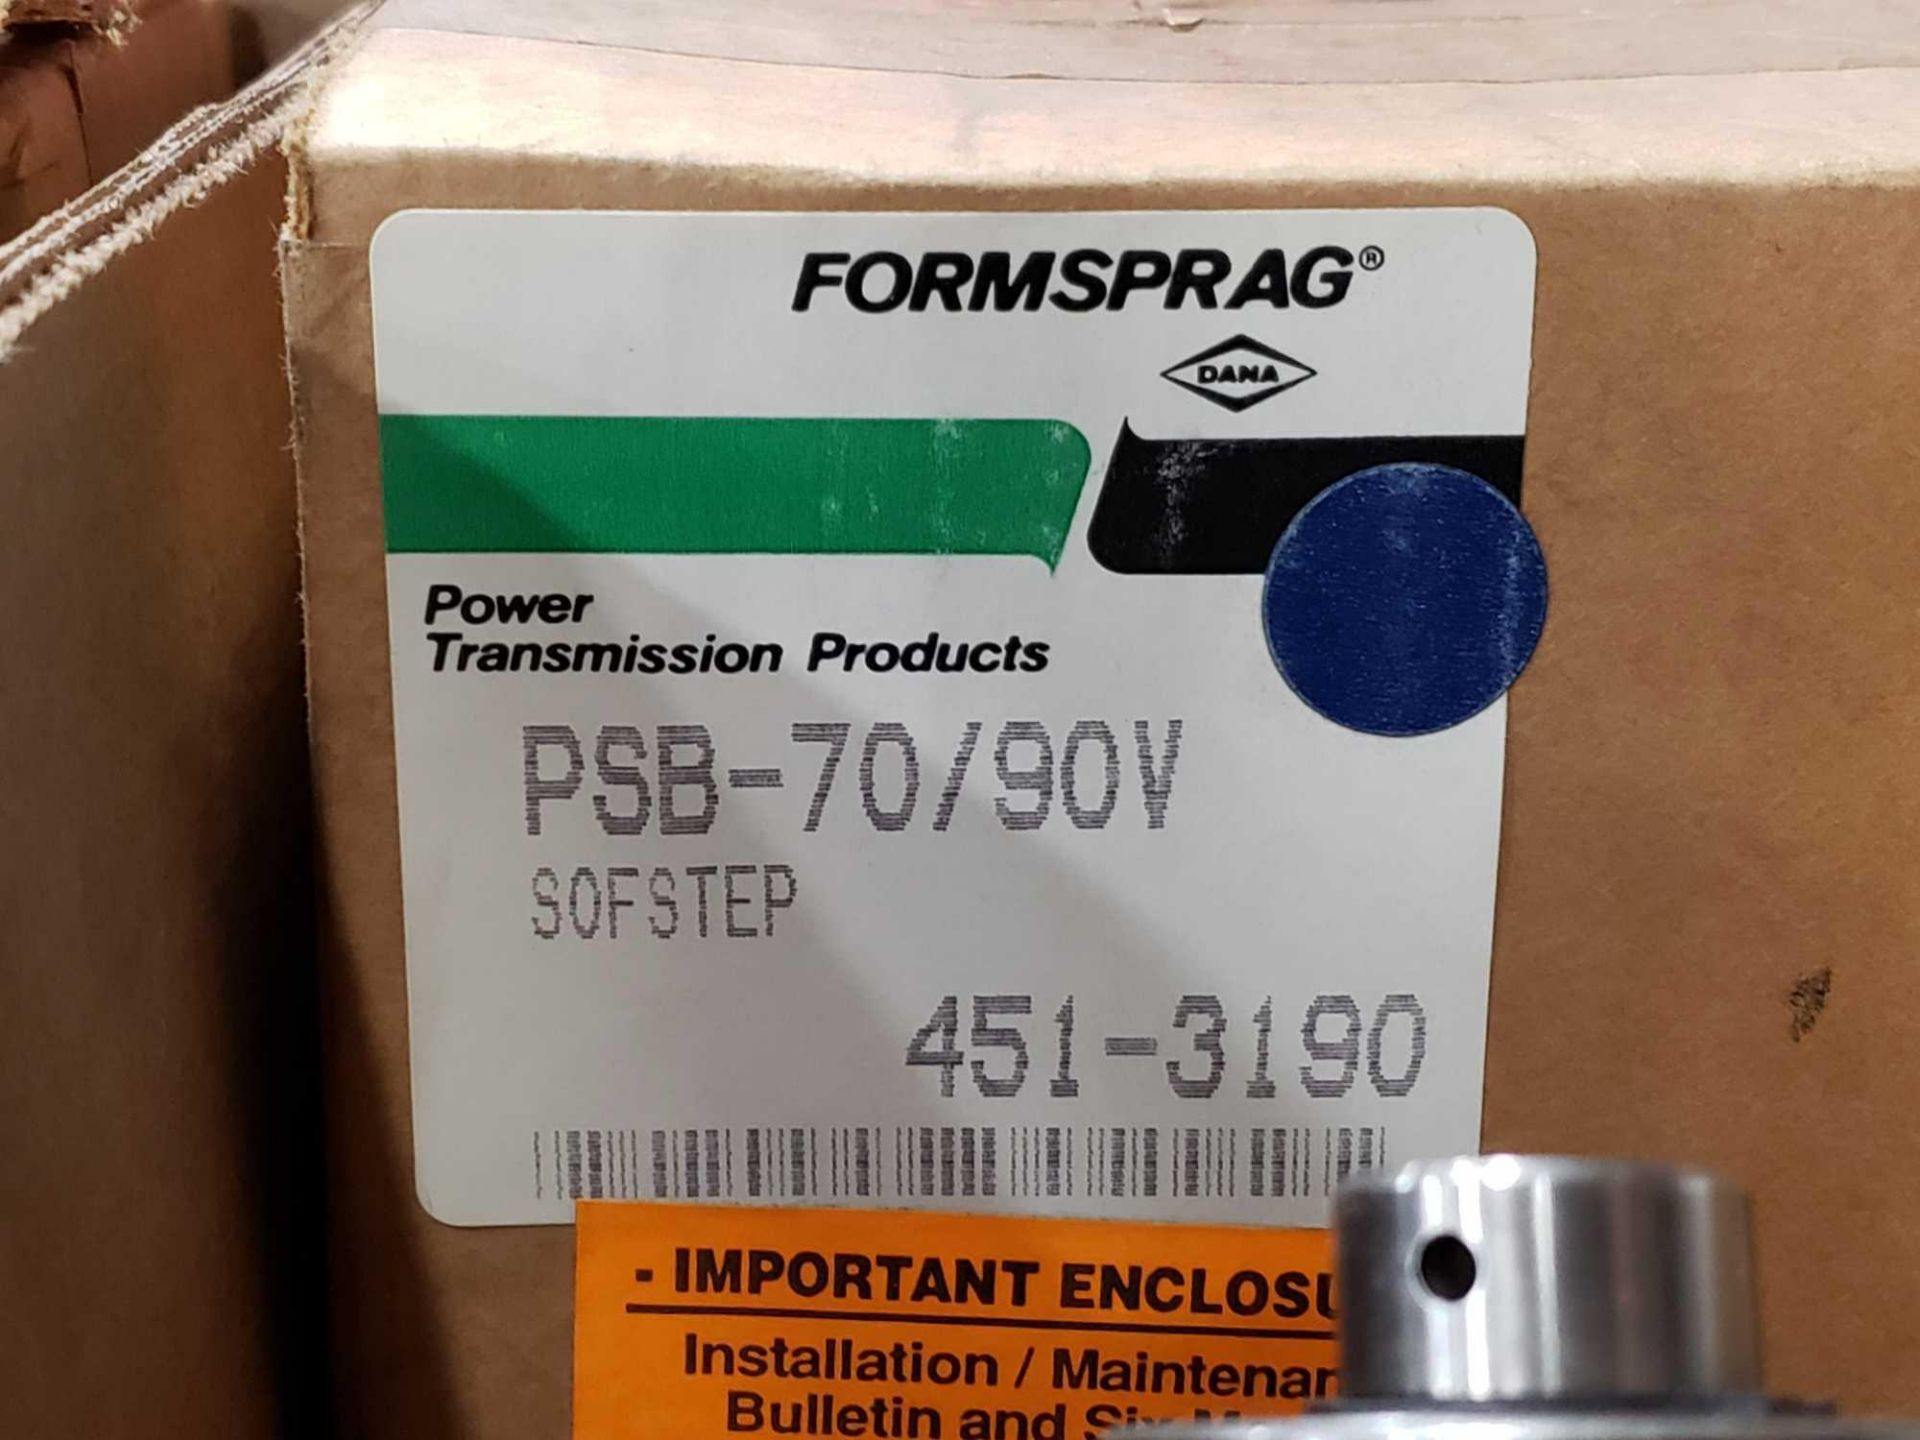 Lot 6 - Formsprag Magpowr sofstep model PSB-70/90V magnetic partical clutch brake. New in box.